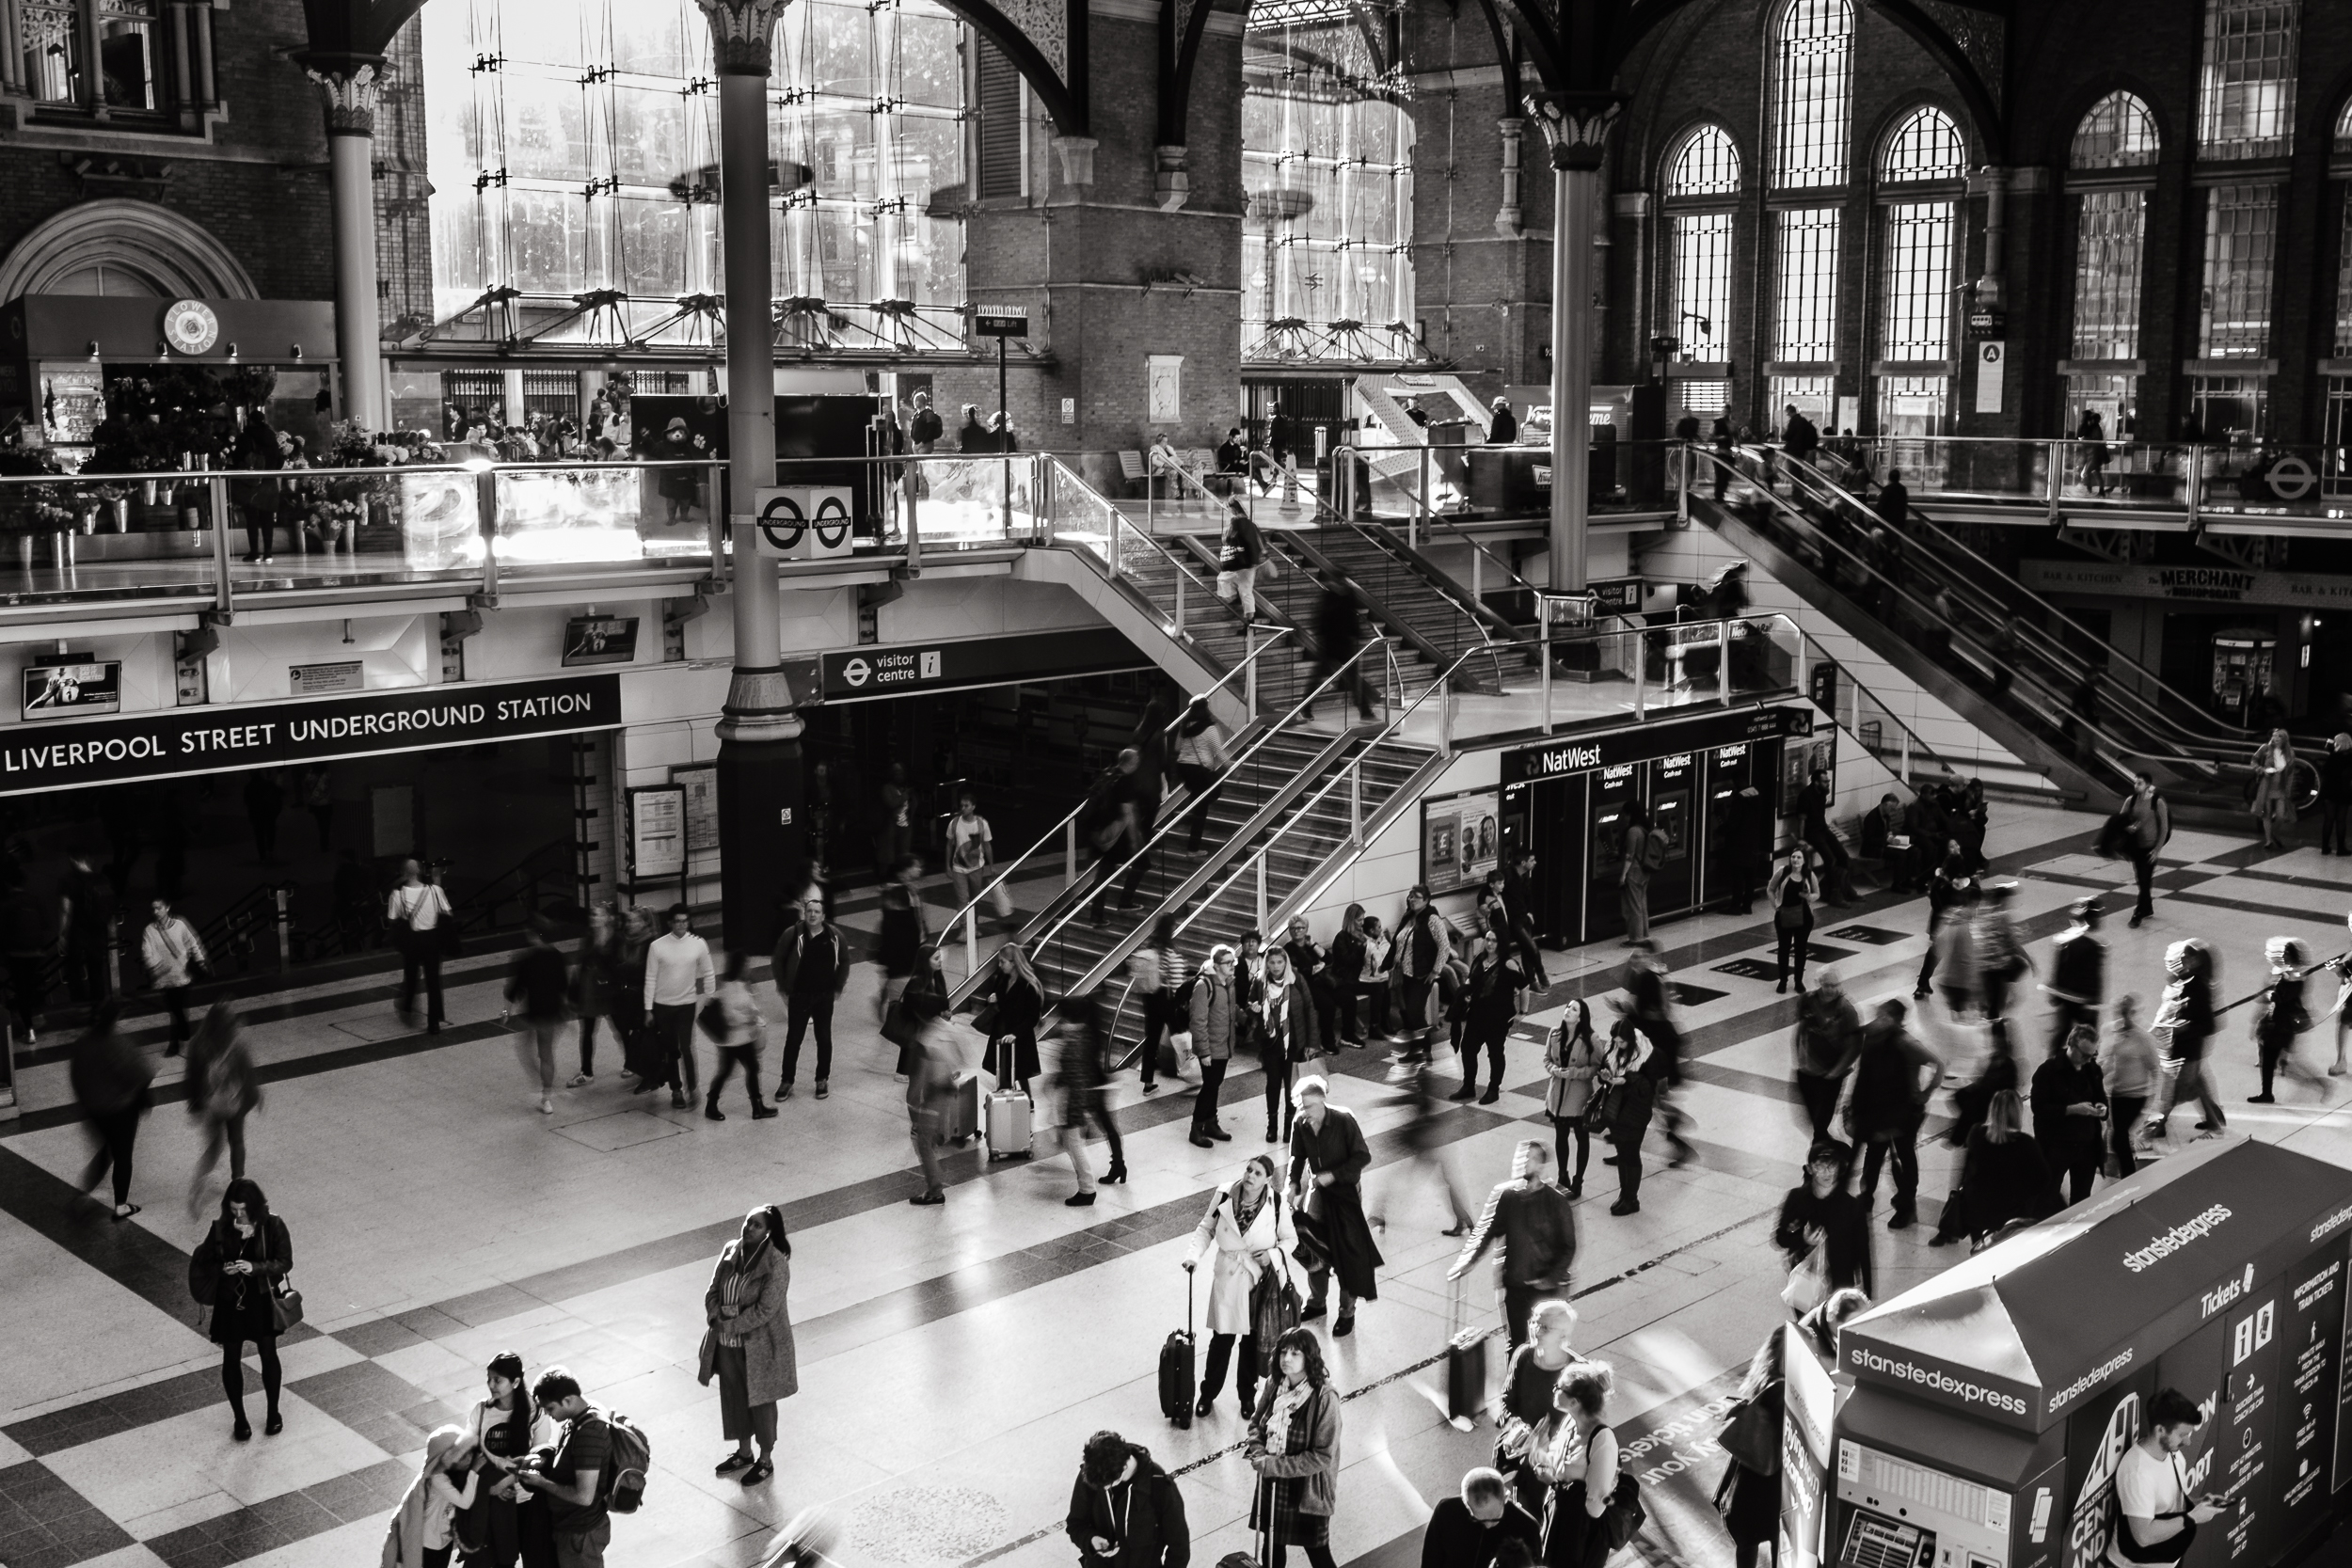 Liverpool Street Station action, London